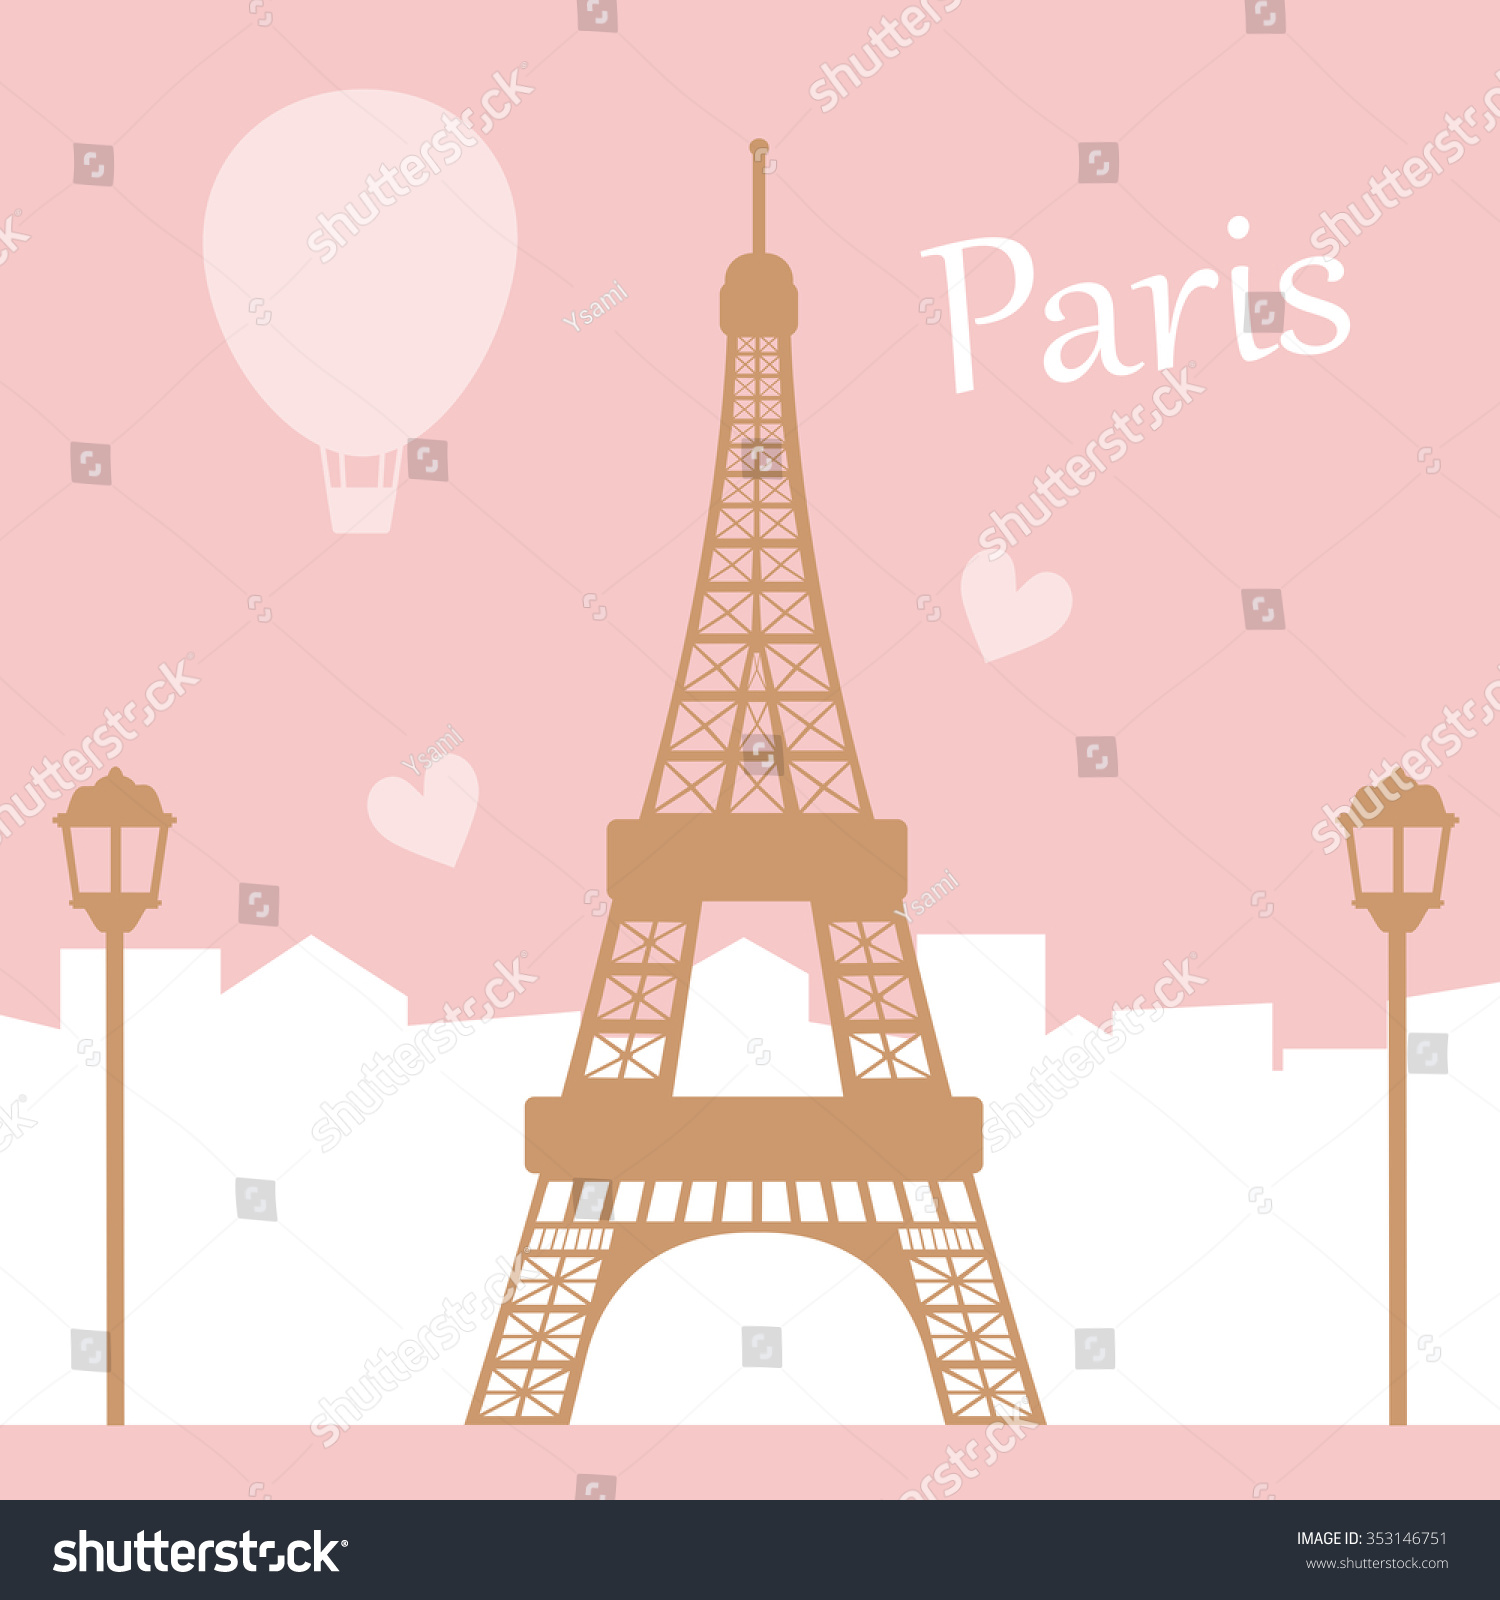 Paris Illustration Eiffel Tower Text City Stock Vector